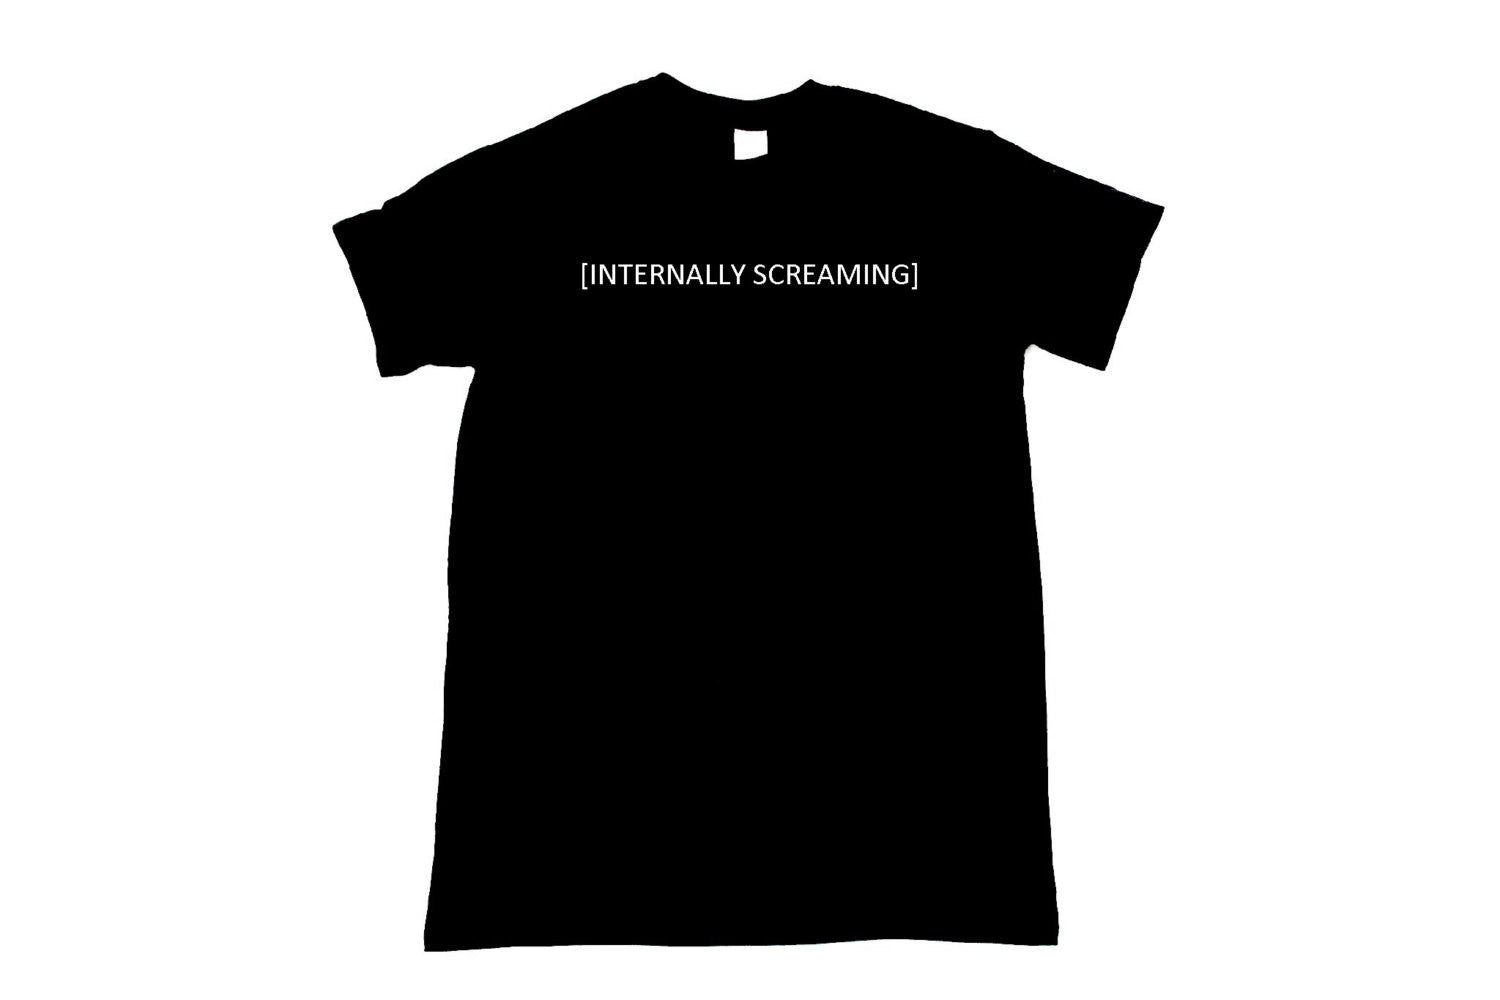 Internally Screaming Unisex Black T-Shirt